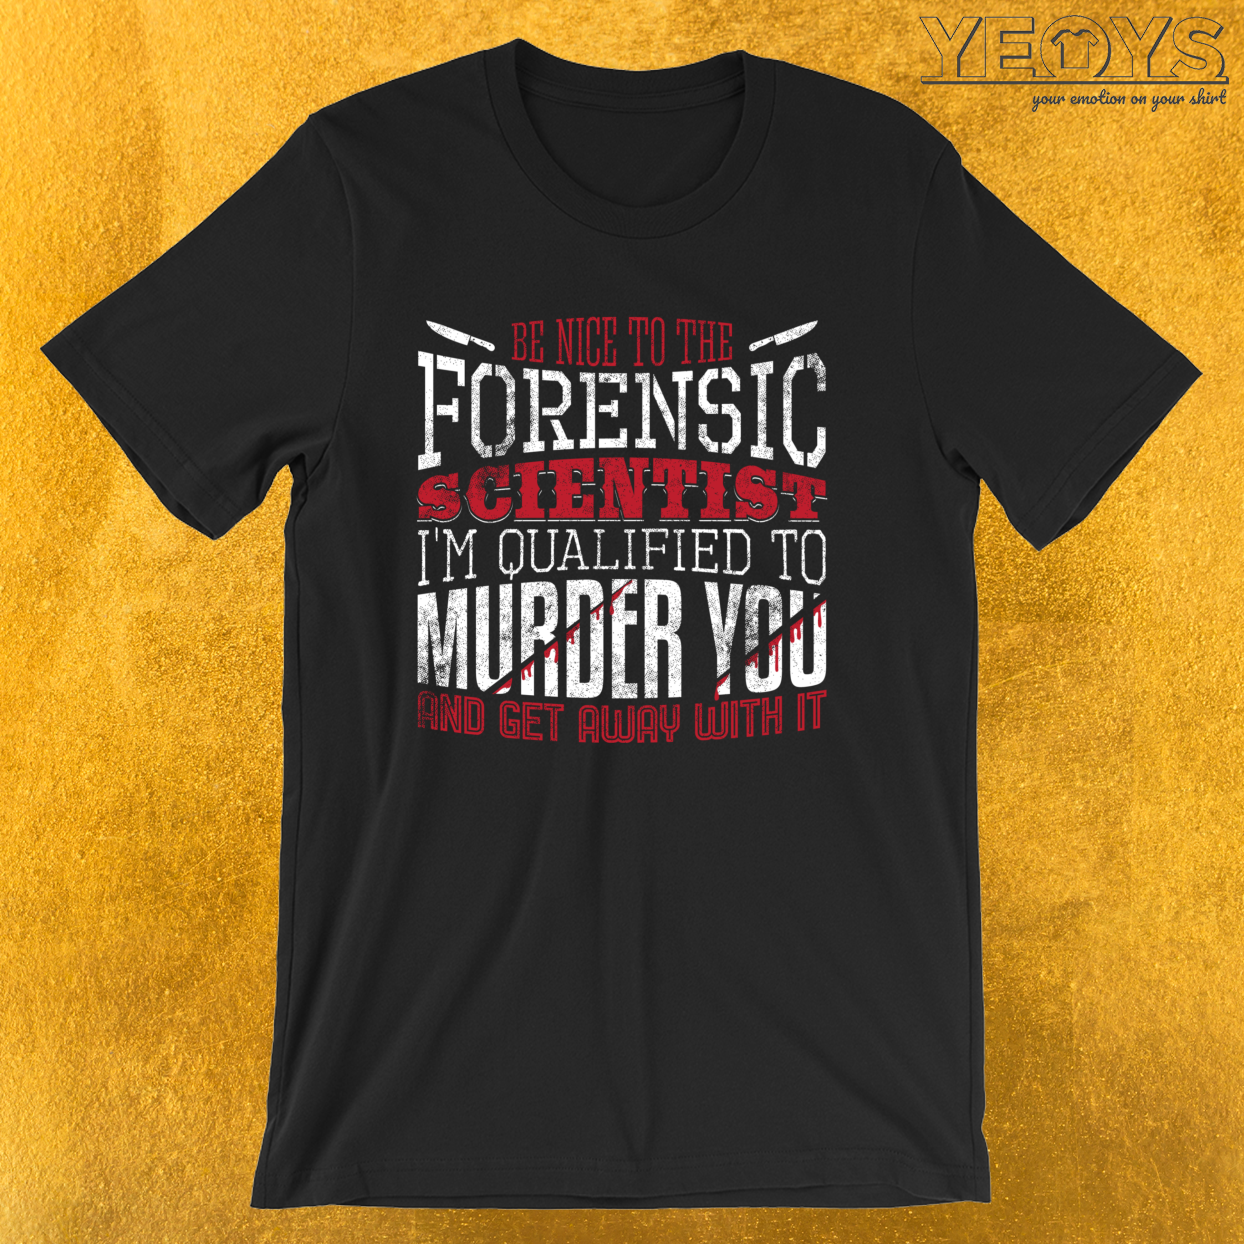 Be Nice To The Forensic Scientist – Forensic Science Tee